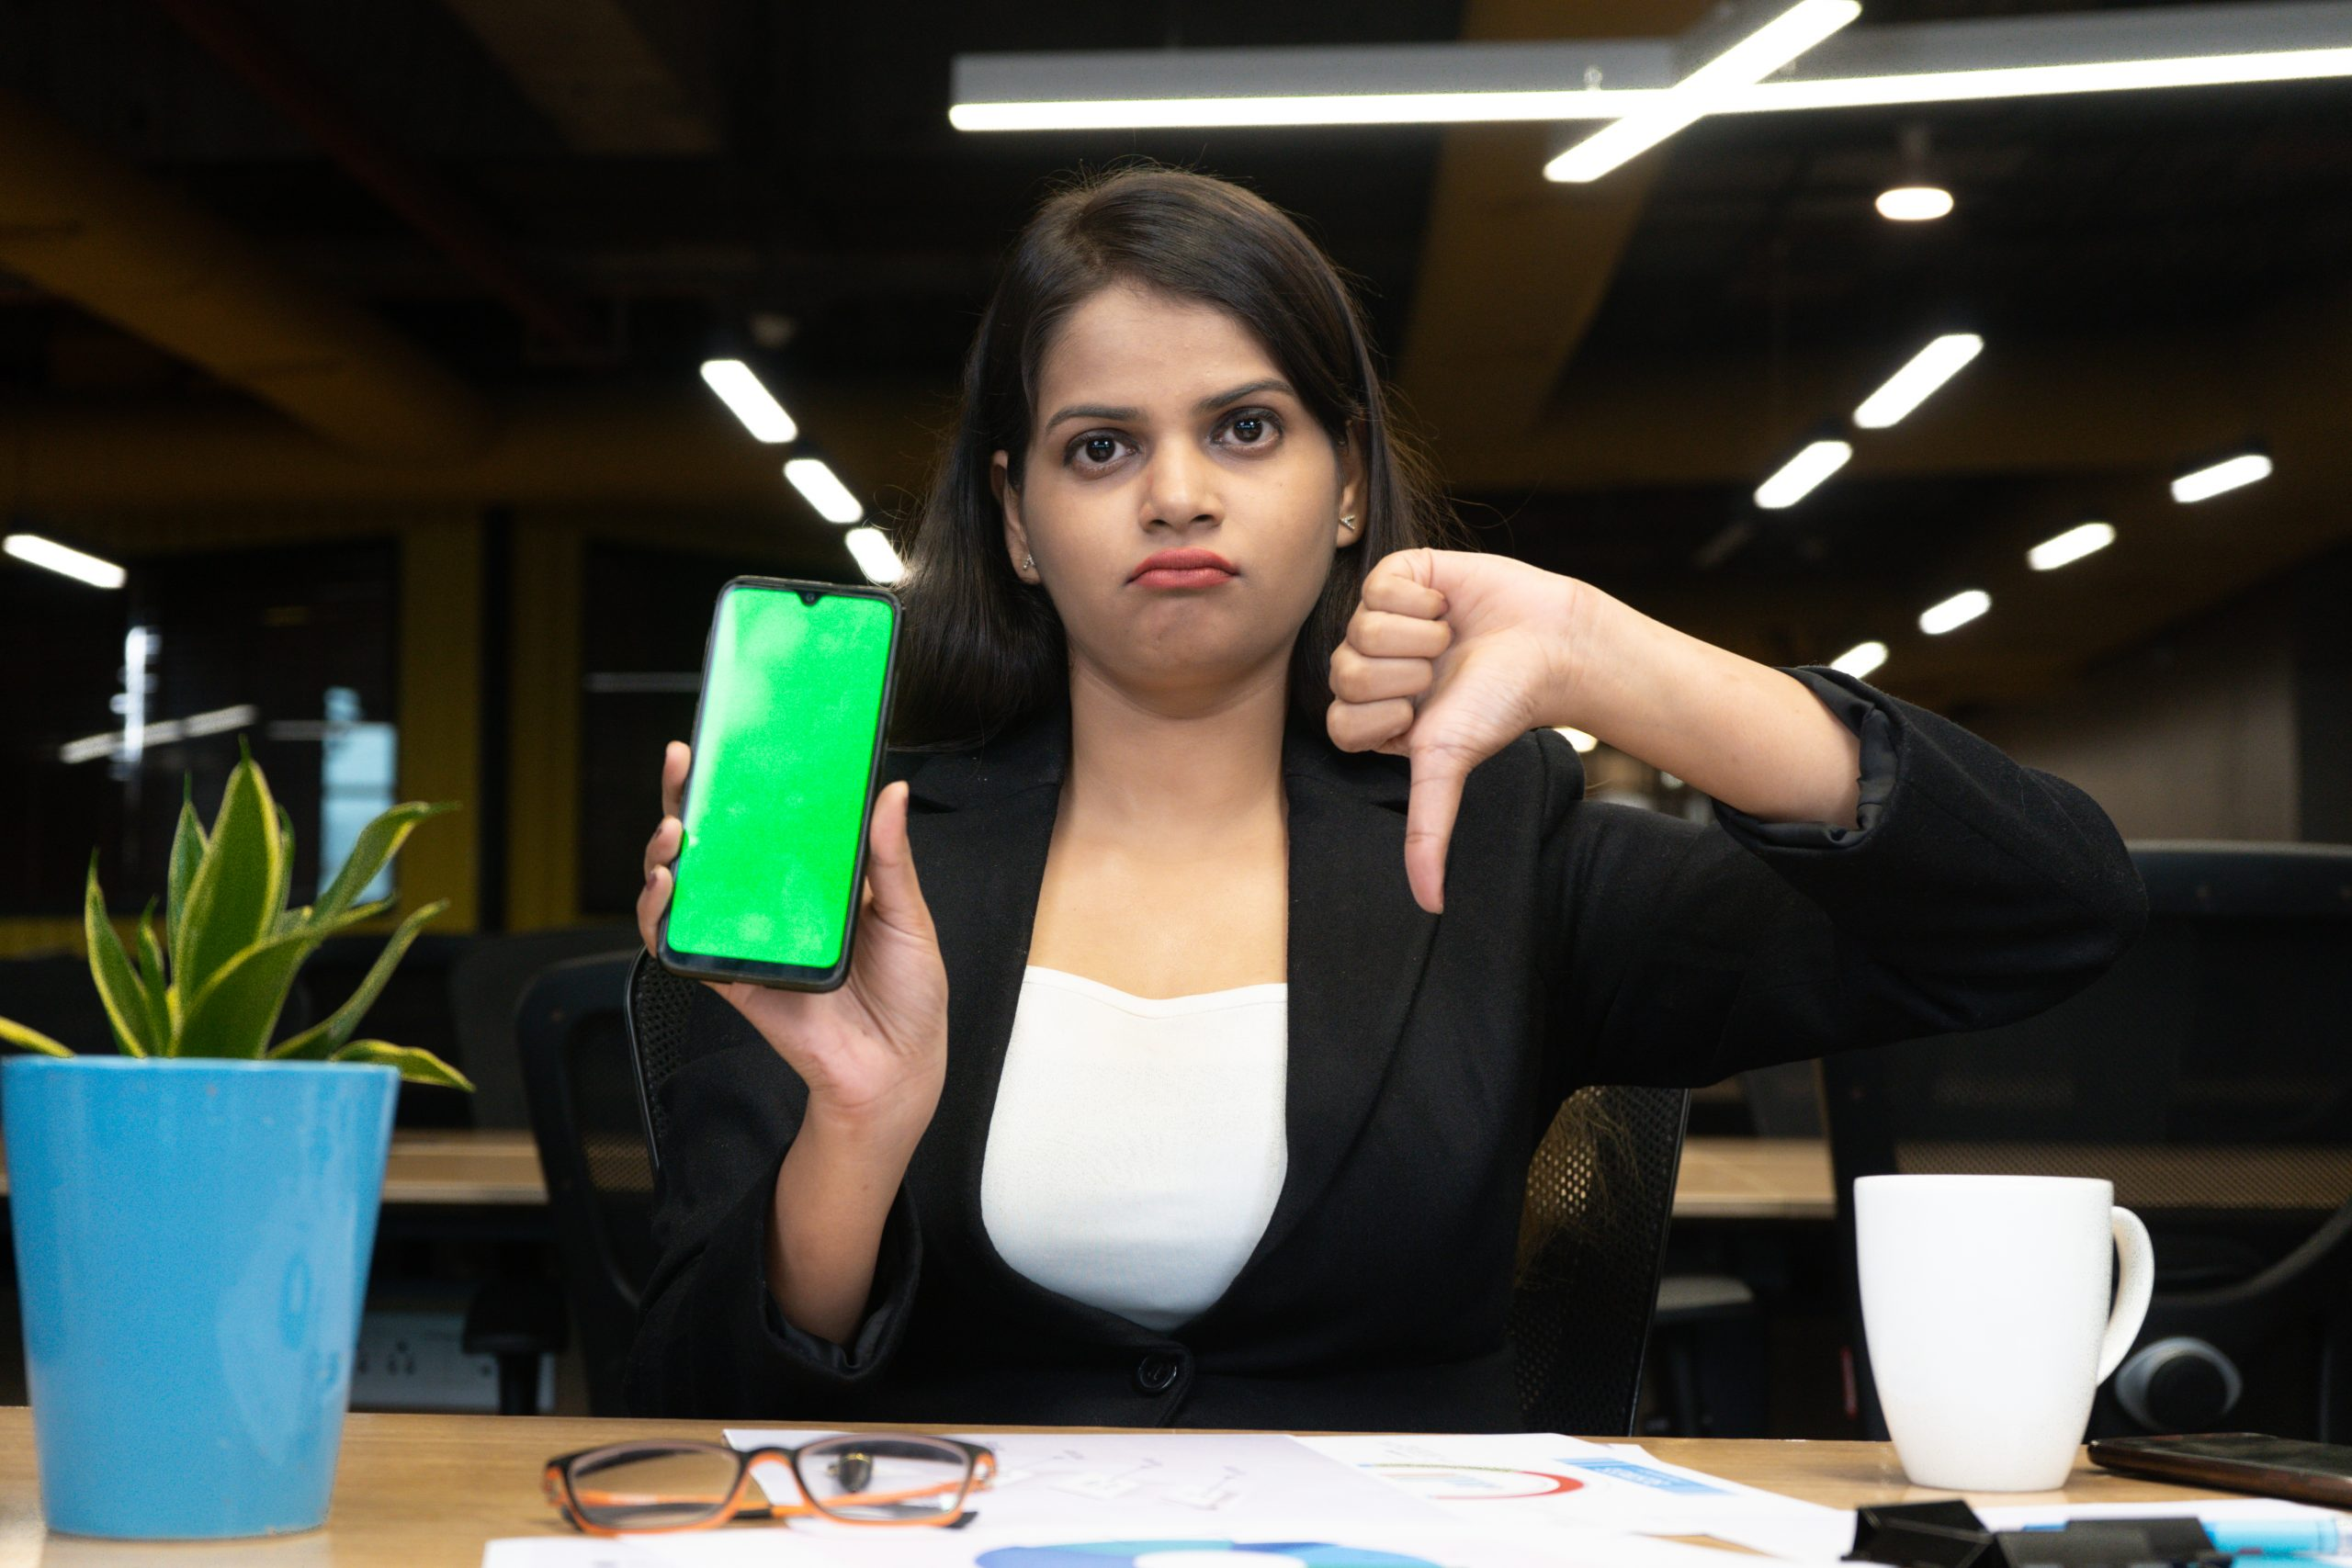 Manager pointing dislike about phone